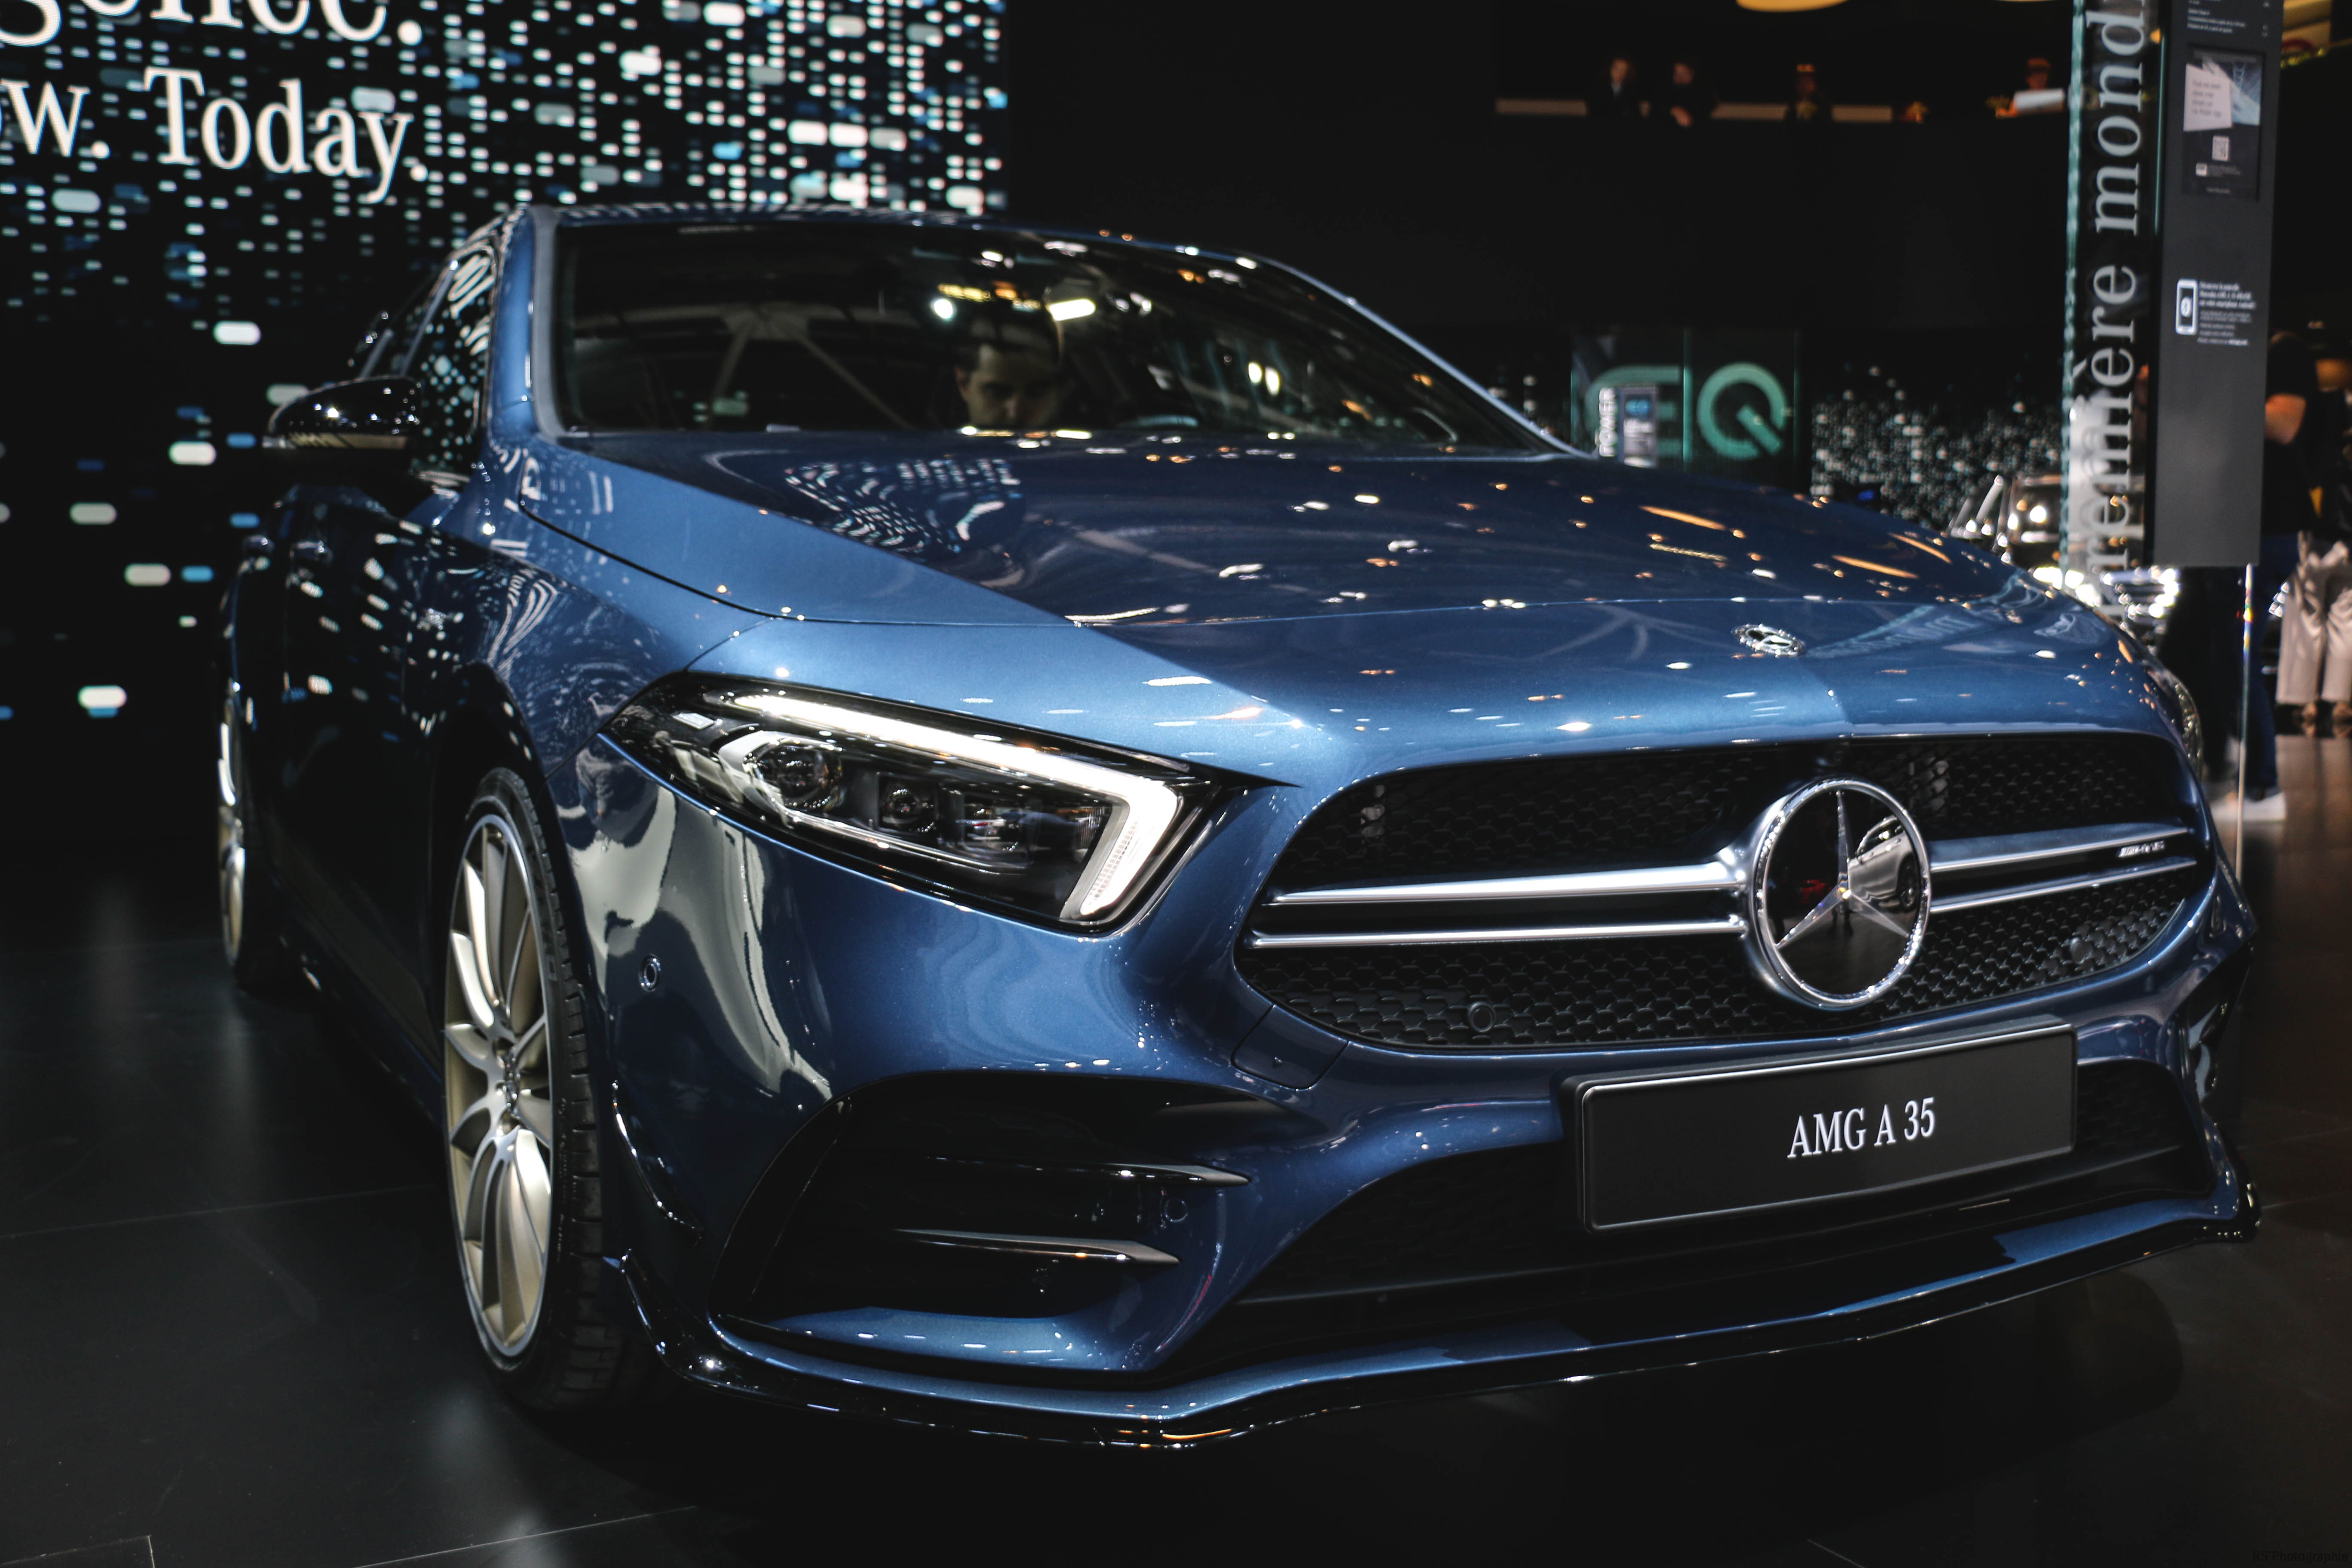 Mercedes-AMG A35 - front - Paris Motor Show - 2018 - Mondial Auto - photo by Arnaud Demasier RS Photographie